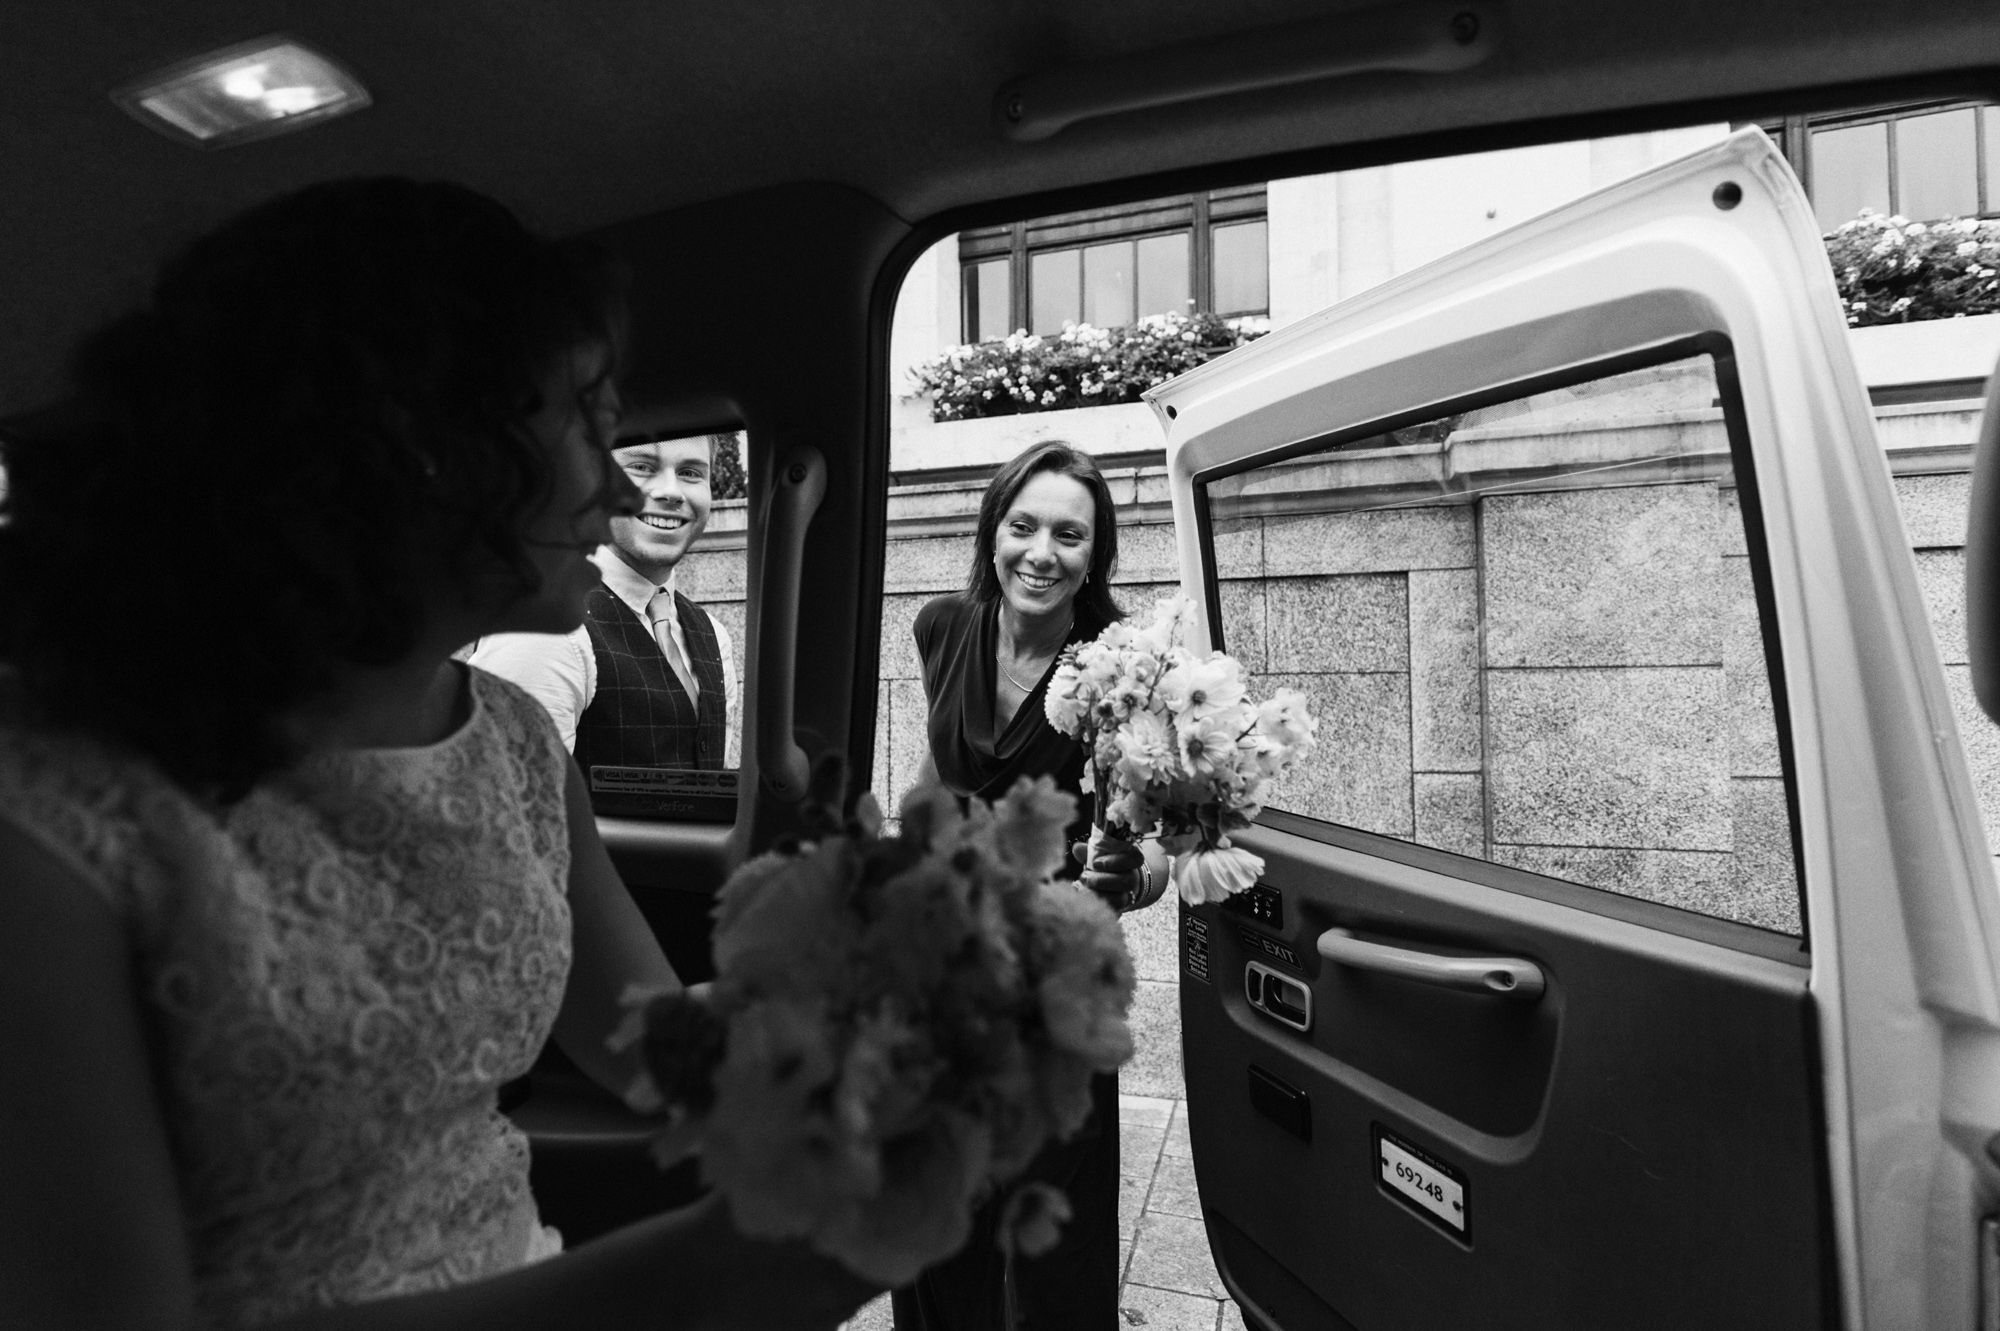 White Union Jack London taxi transport to wedding - gay wedding The Roost Dalston wedding - quirky London wedding photographer © Babb Photo